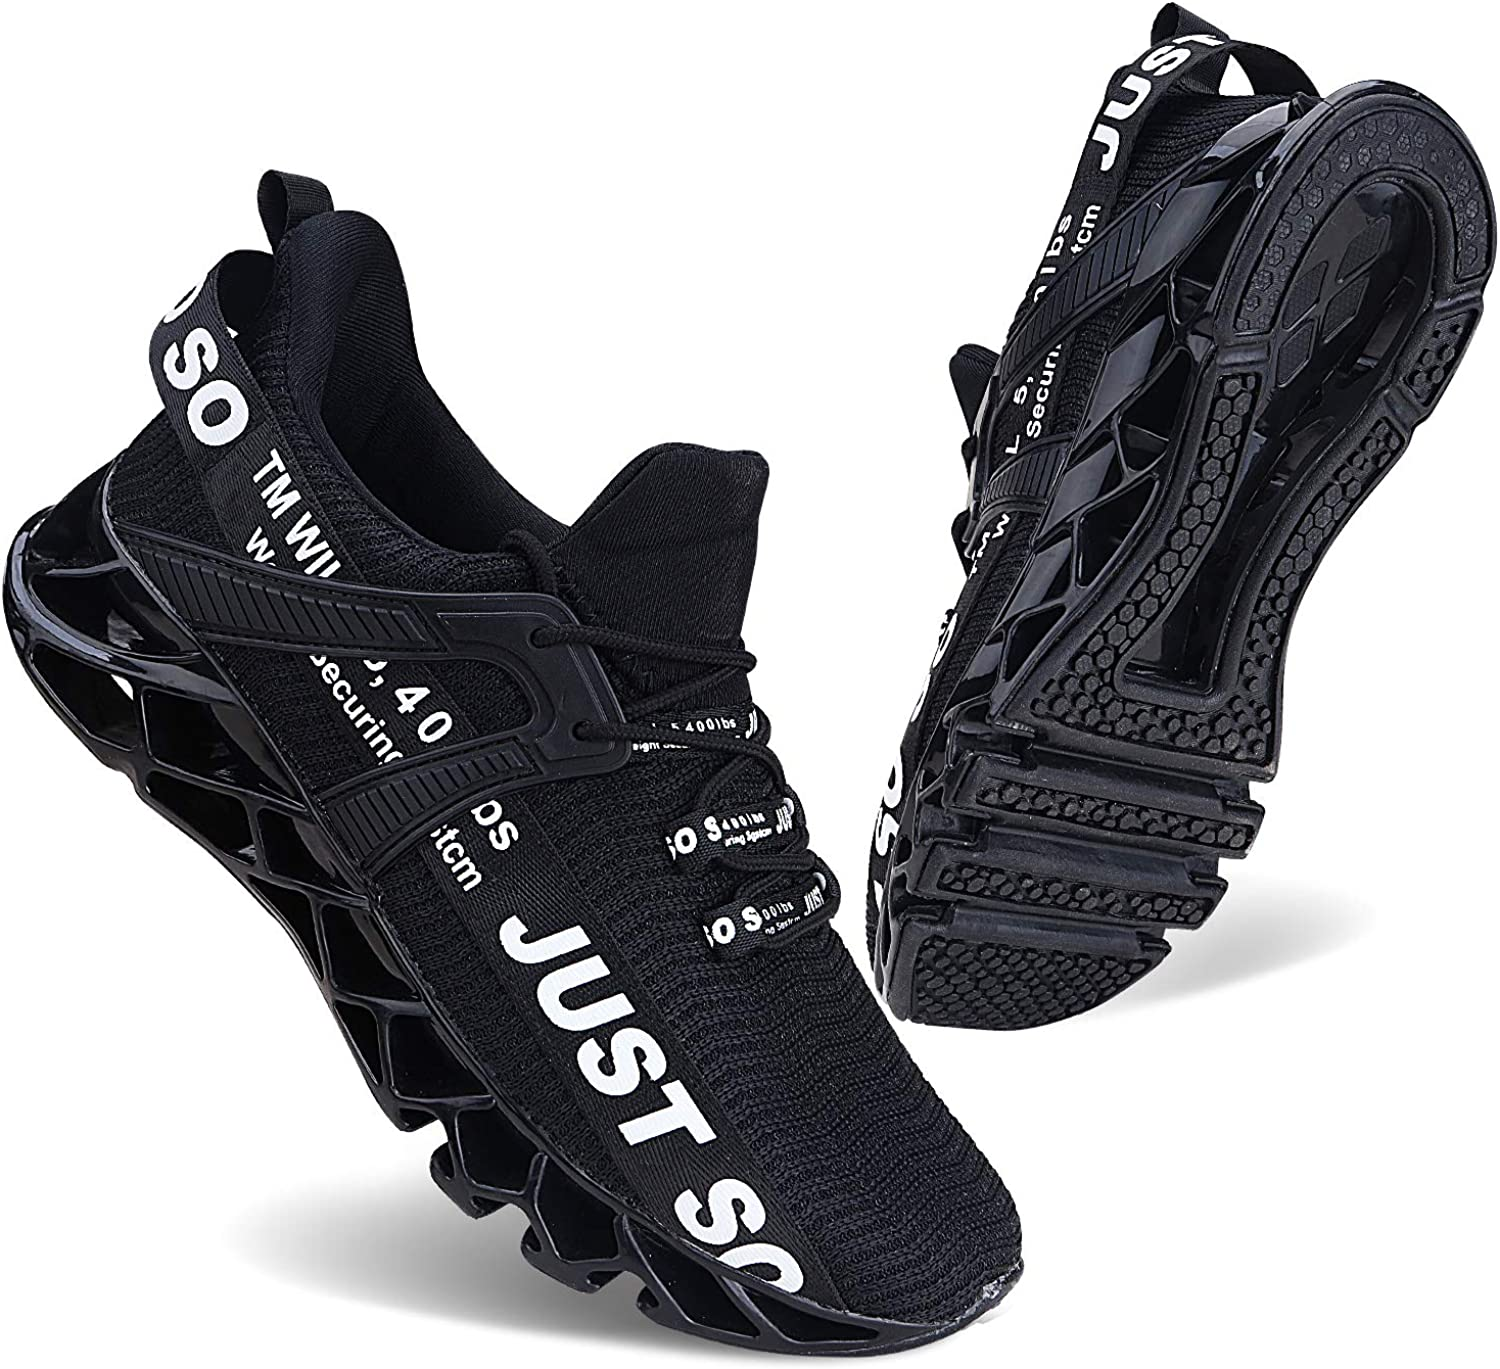 COKAFIL Mens Running Shoes Athletic Daily bargain sale Tennis All stores are sold Blade F Walking